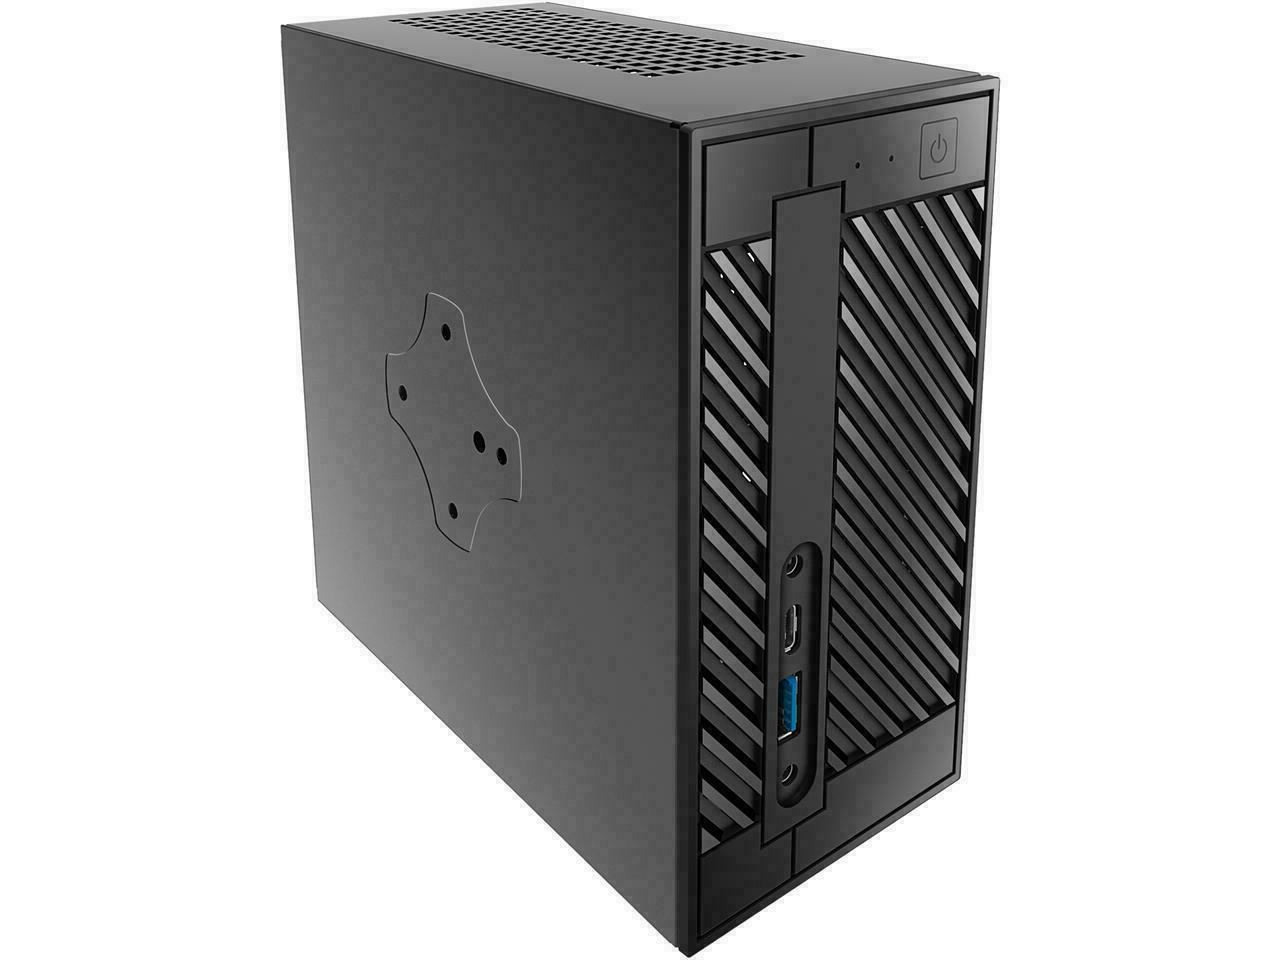 ASRock DeskMini 110W Mini PC - | RAM | 512GB or 8